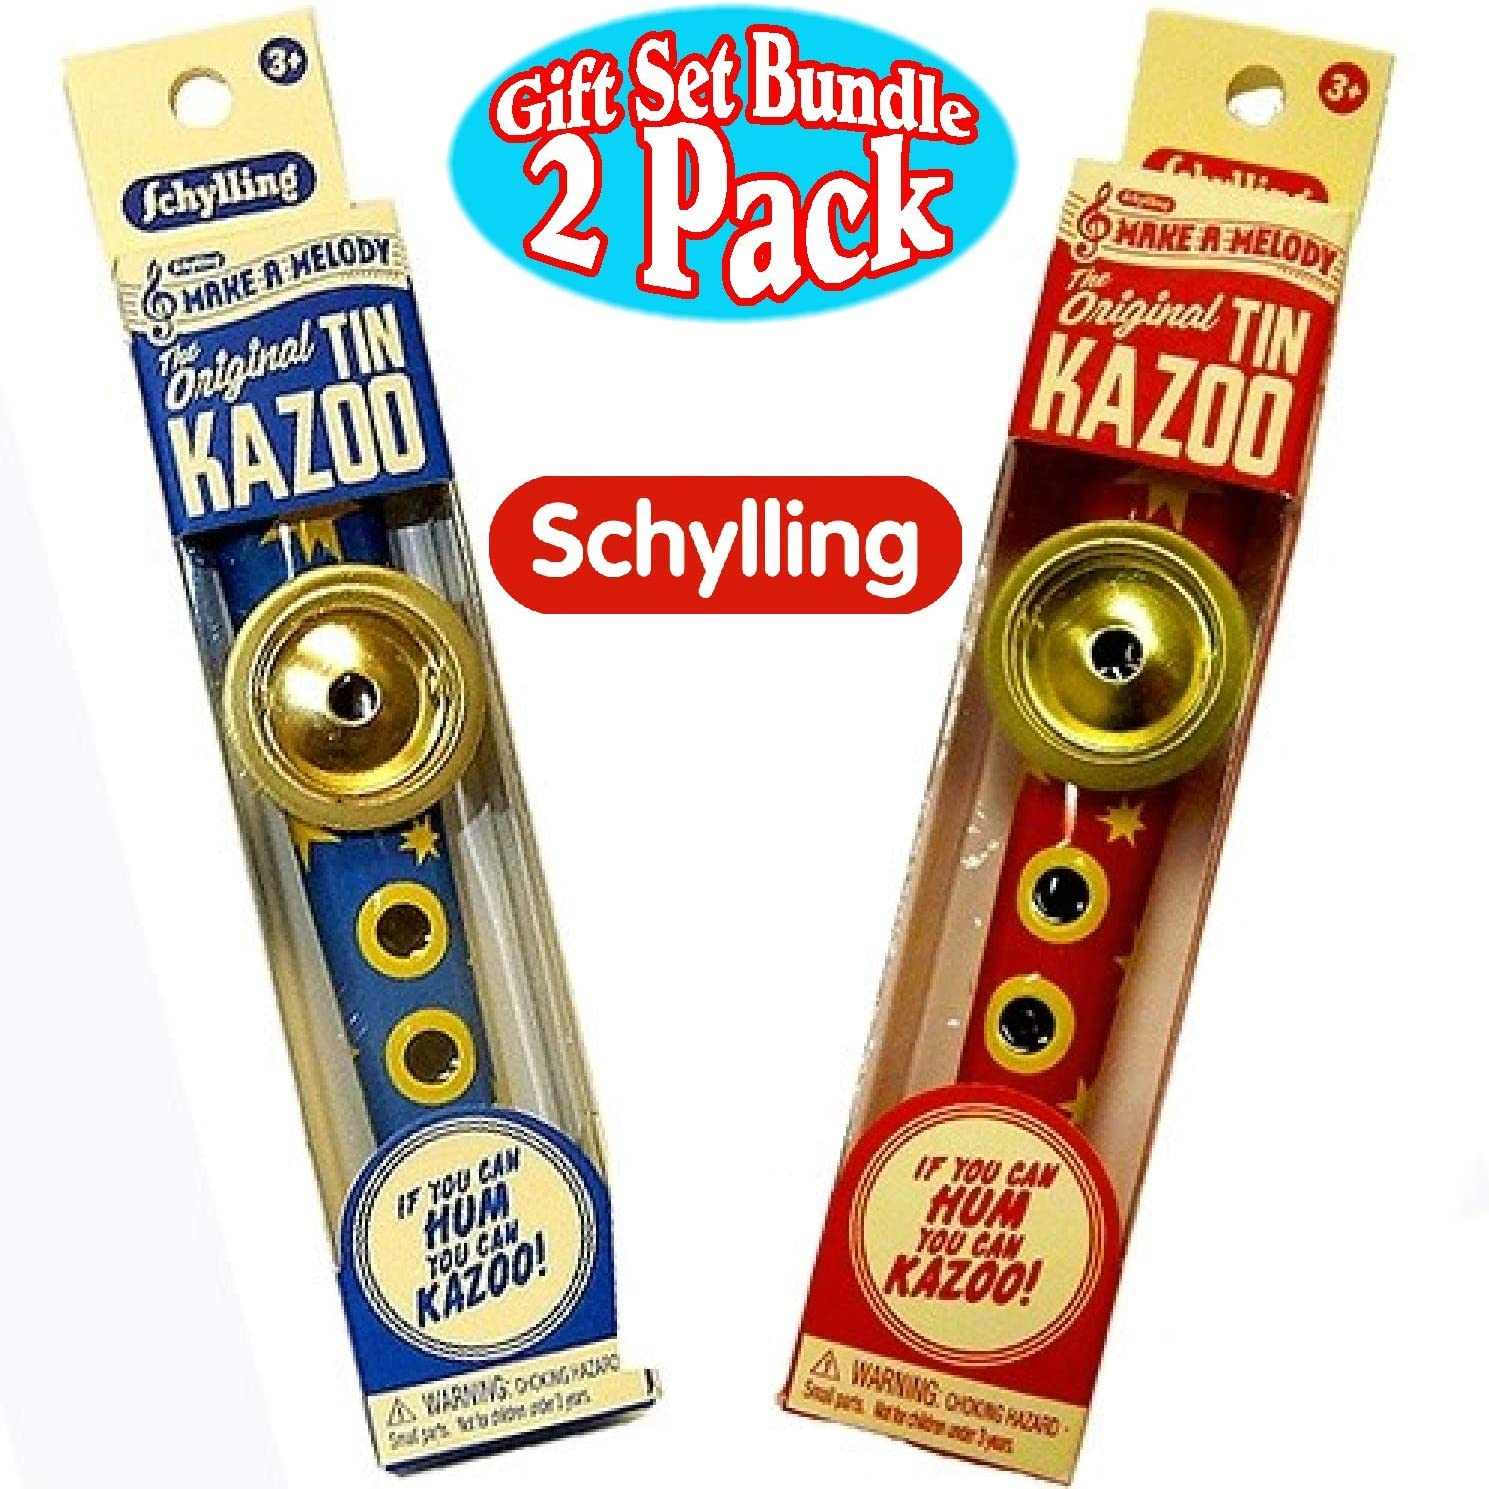 Schylling Musical Instruments Original Classic Japan's largest assortment Blue Ye NEW before selling Kazoo Tin